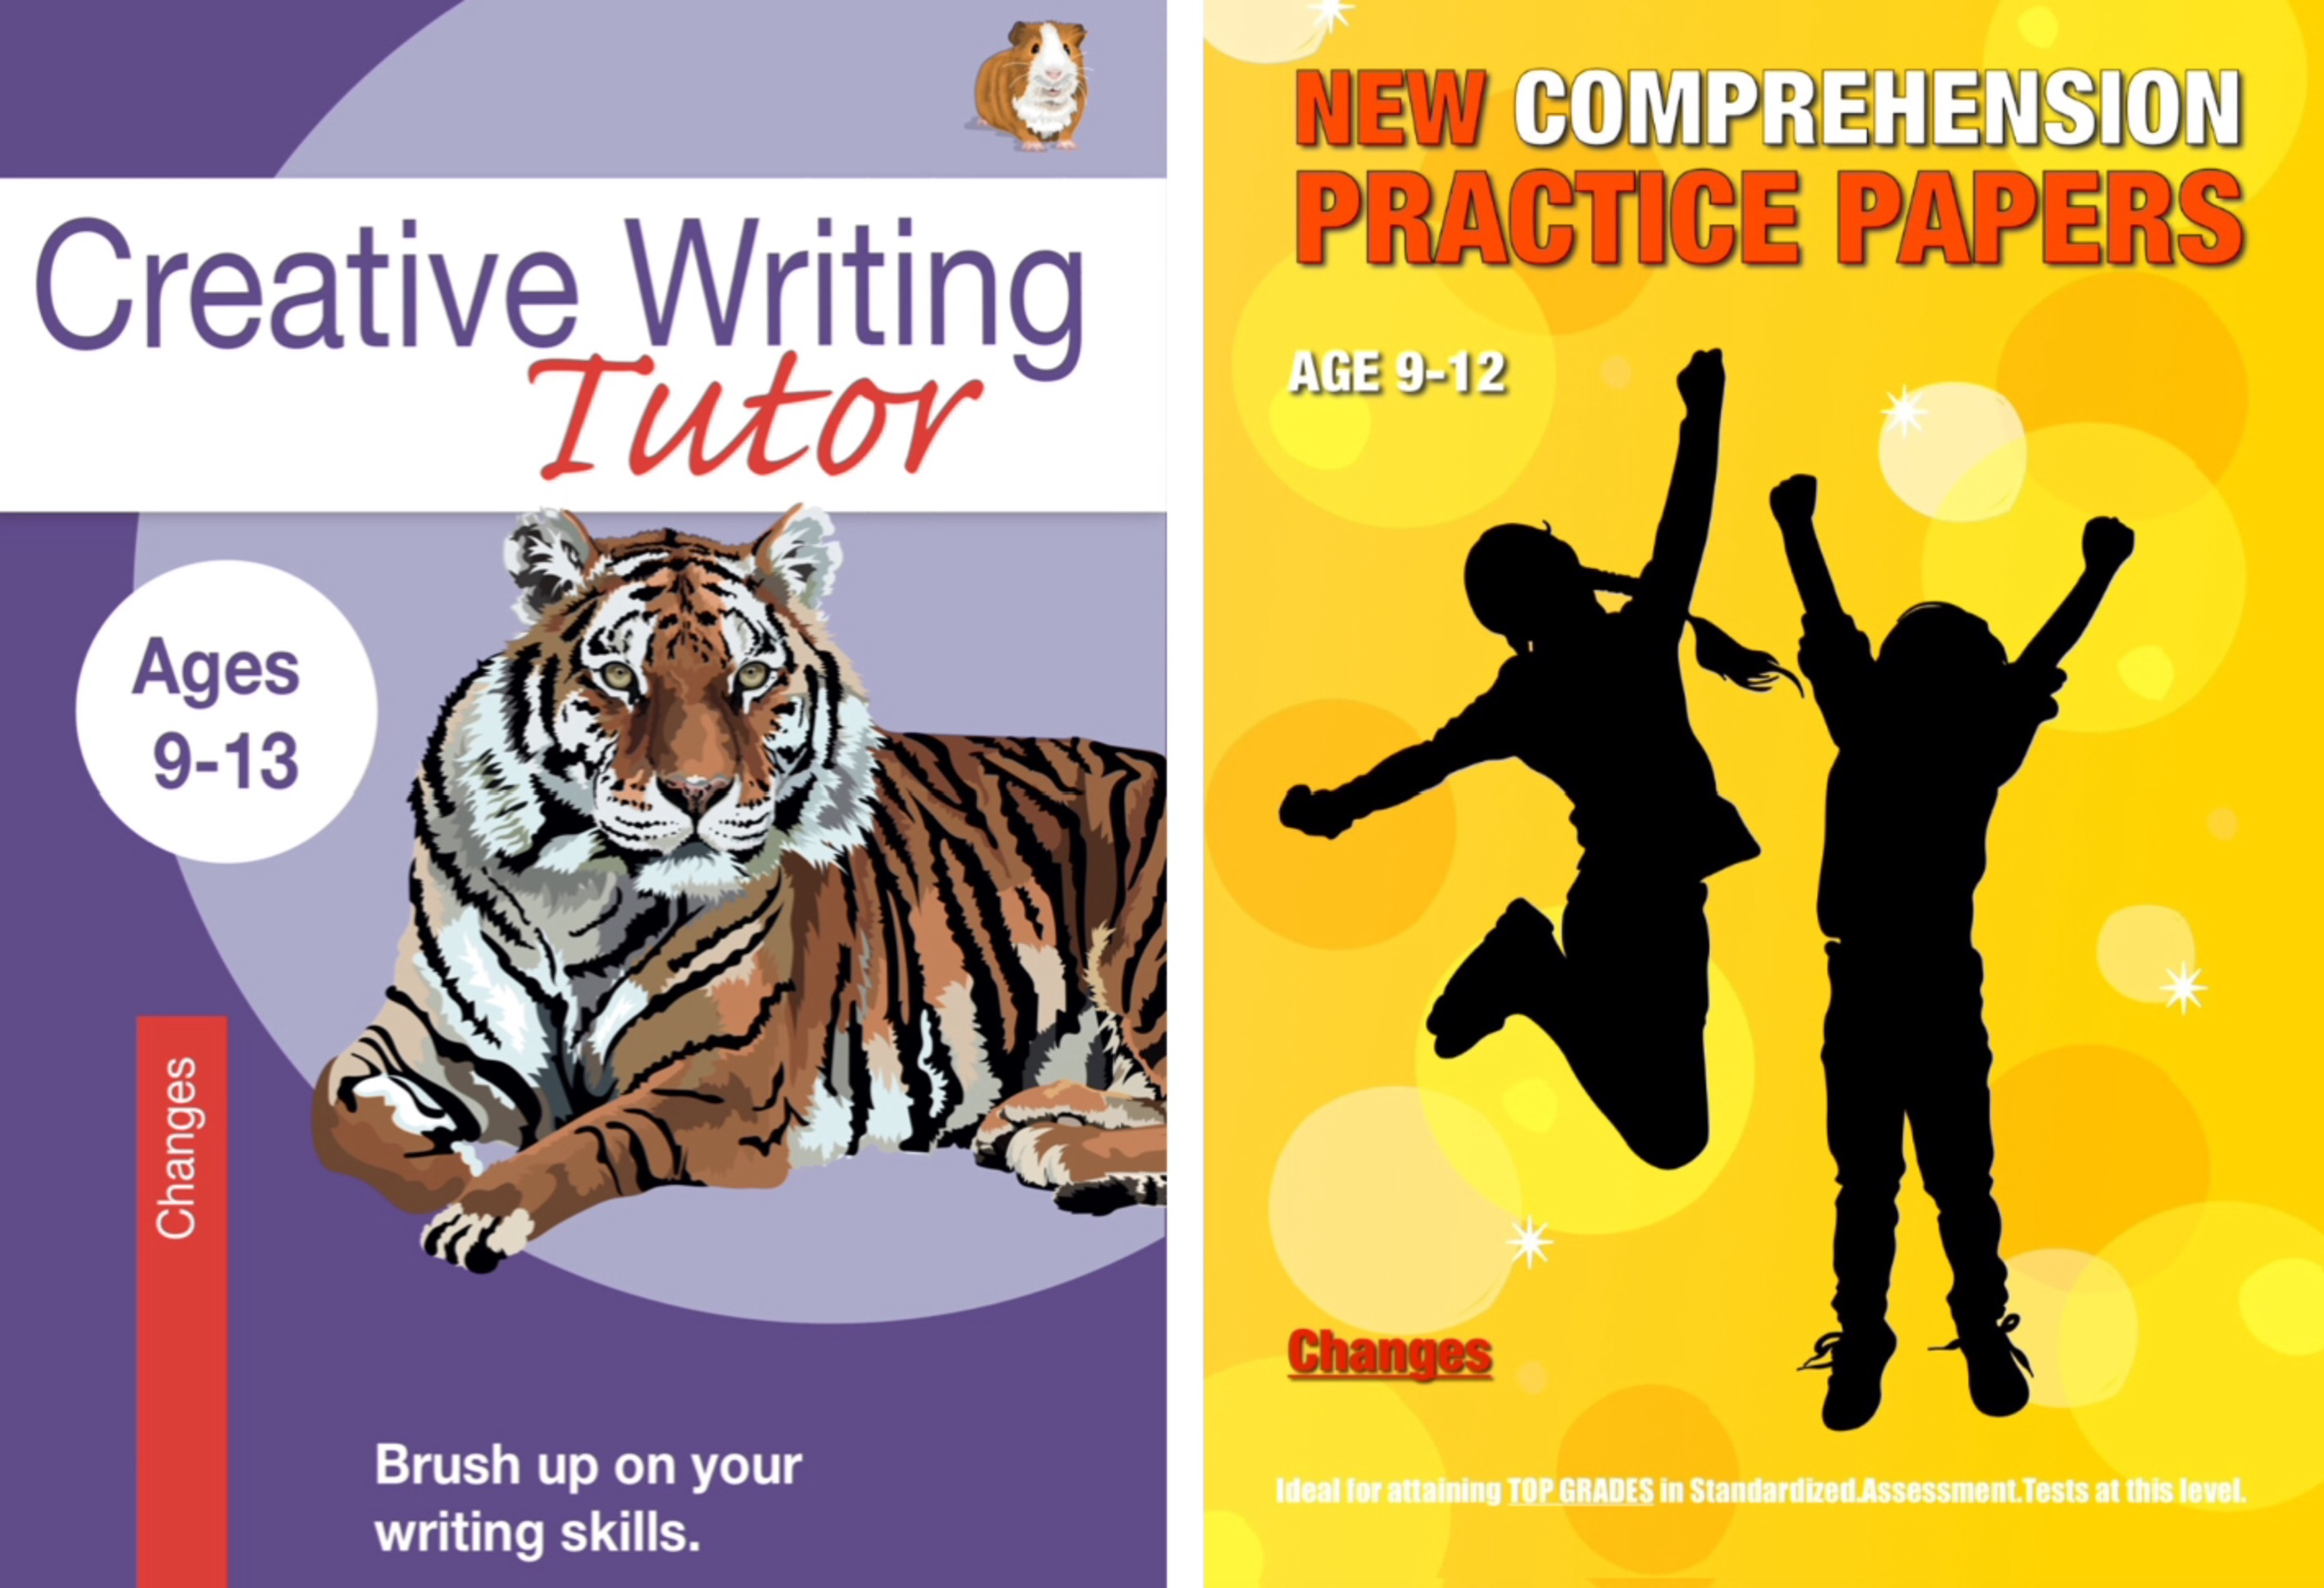 Highly Recommended: Learn Comprehension Skills 'Changes' 9-12 years